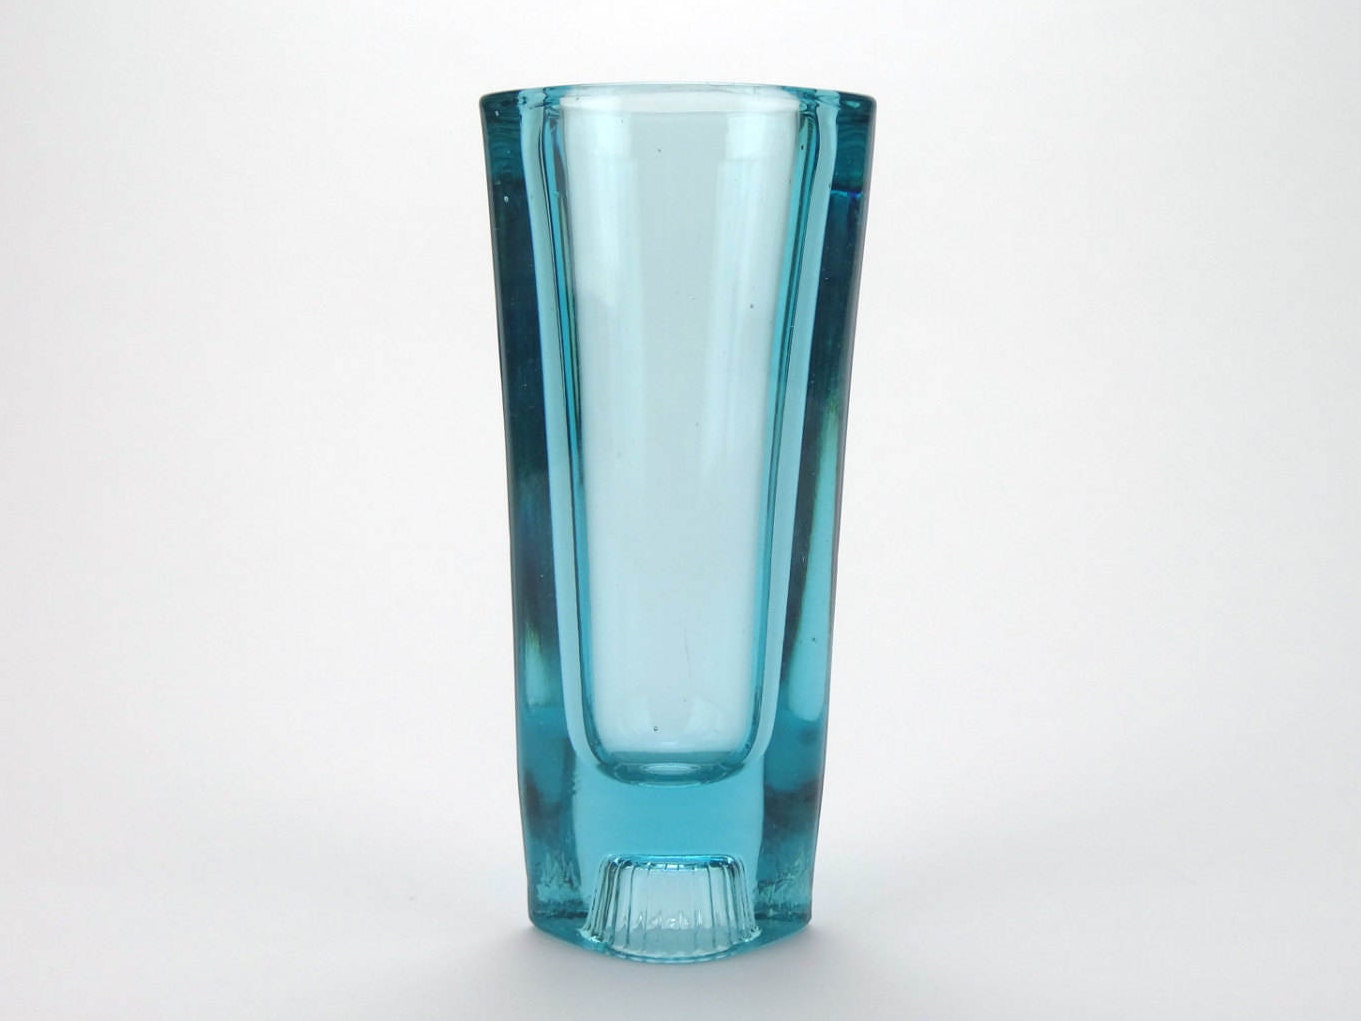 Milo filip 1960s retro czech light blue glass vase for sklo description stunning vintage czech sklo union glass vase reviewsmspy